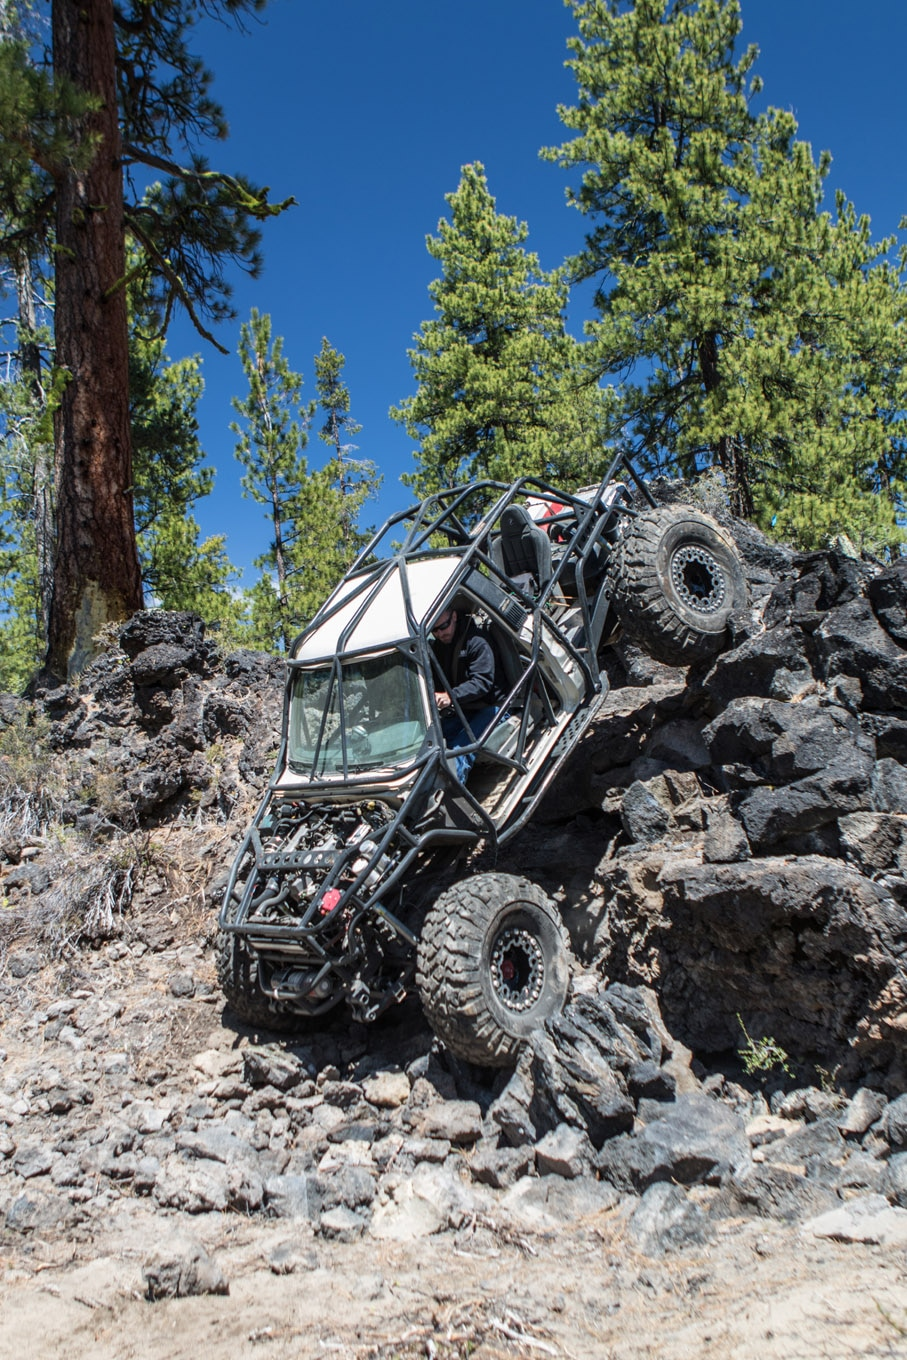 Trever and Bo Jolly had just returned from Costa Rica, and despite jet lag they didn't want to miss a day on the trail. Their Toyota 4Runner has seen the sheetmetal slowly go away in favor of tube, but it still has enough seats for the entire family. A 22RE and leaf springs provide simplicity, 1-ton axles were added for strength, and 42-inch Pit Bull Rockers deliver the ground clearance.